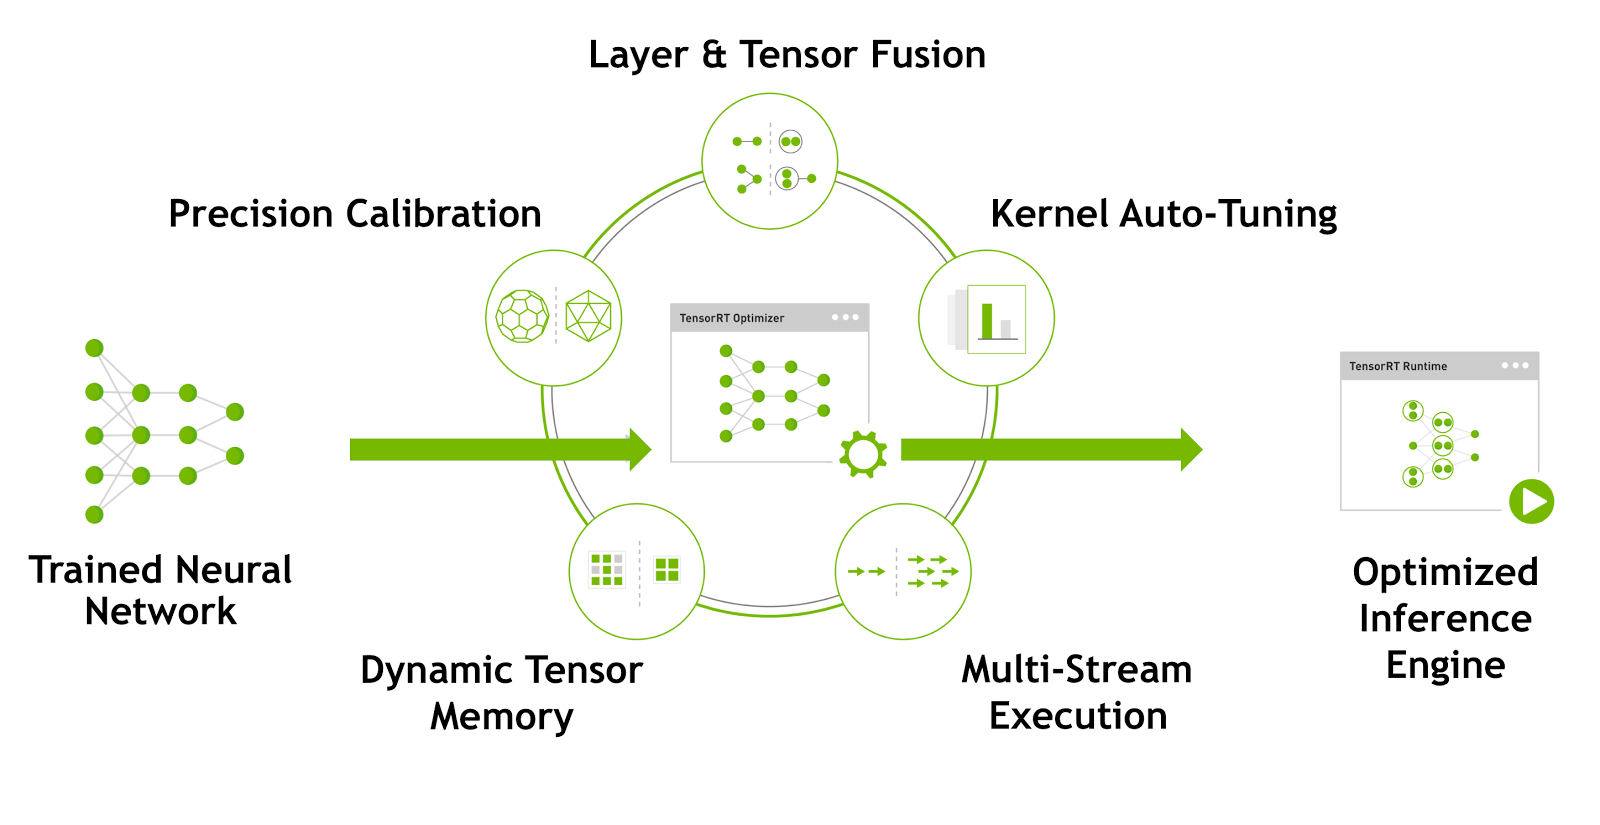 Figure 1. TensorRT optimizes trained neural network models to produce adeployment-ready runtime inference engine.